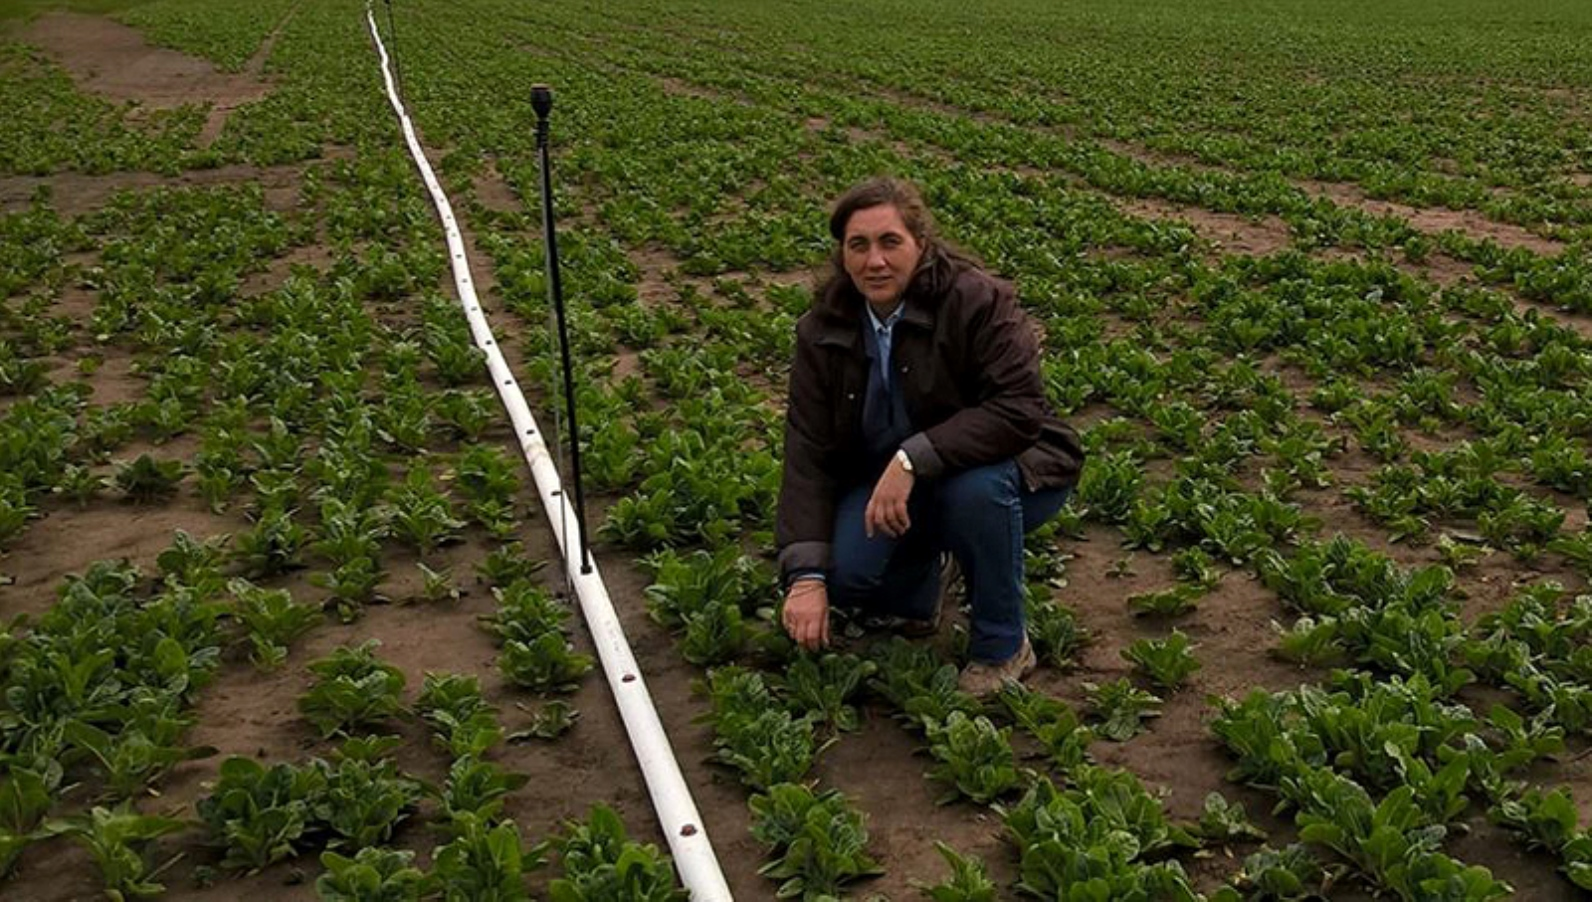 Agricultural Extension Officer Cristina Mondino, a graduate of a MASHAV-MATC course, is sharing with her colleagues in Argentina the horticulture knowledge she acquired in Israel. Photo: courtesy